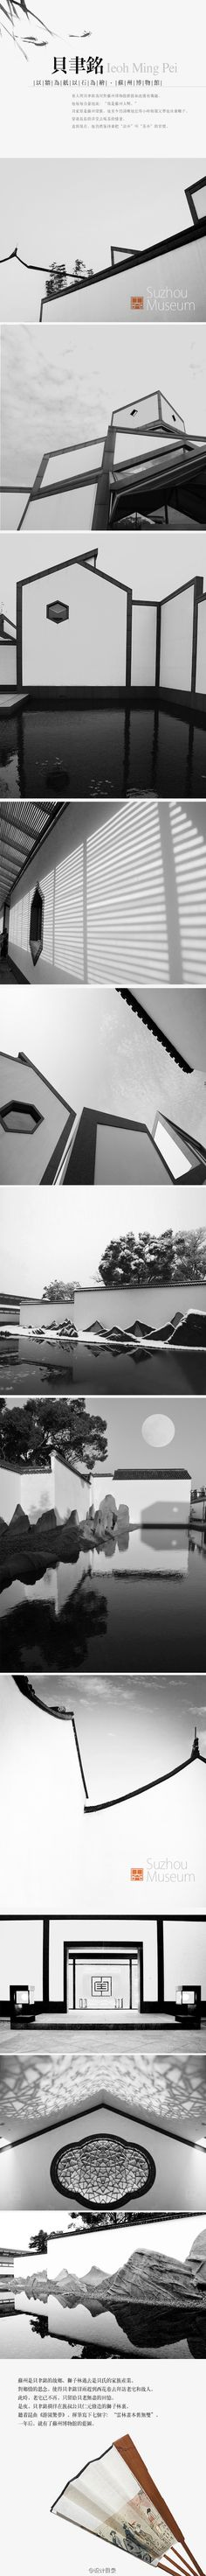 suzhou museum, designed by I.M Pei, incorporates many design elements of classical Chinese gardens. Next to the Lion Garden which belonged to the architect's family, and where he lived as a child. Interior Architecture Drawing, Architecture Drawing Sketchbooks, Architecture Logo, Modern Architecture House, Concept Architecture, Sustainable Architecture, Architecture Details, Classical Architecture, Ancient Chinese Architecture